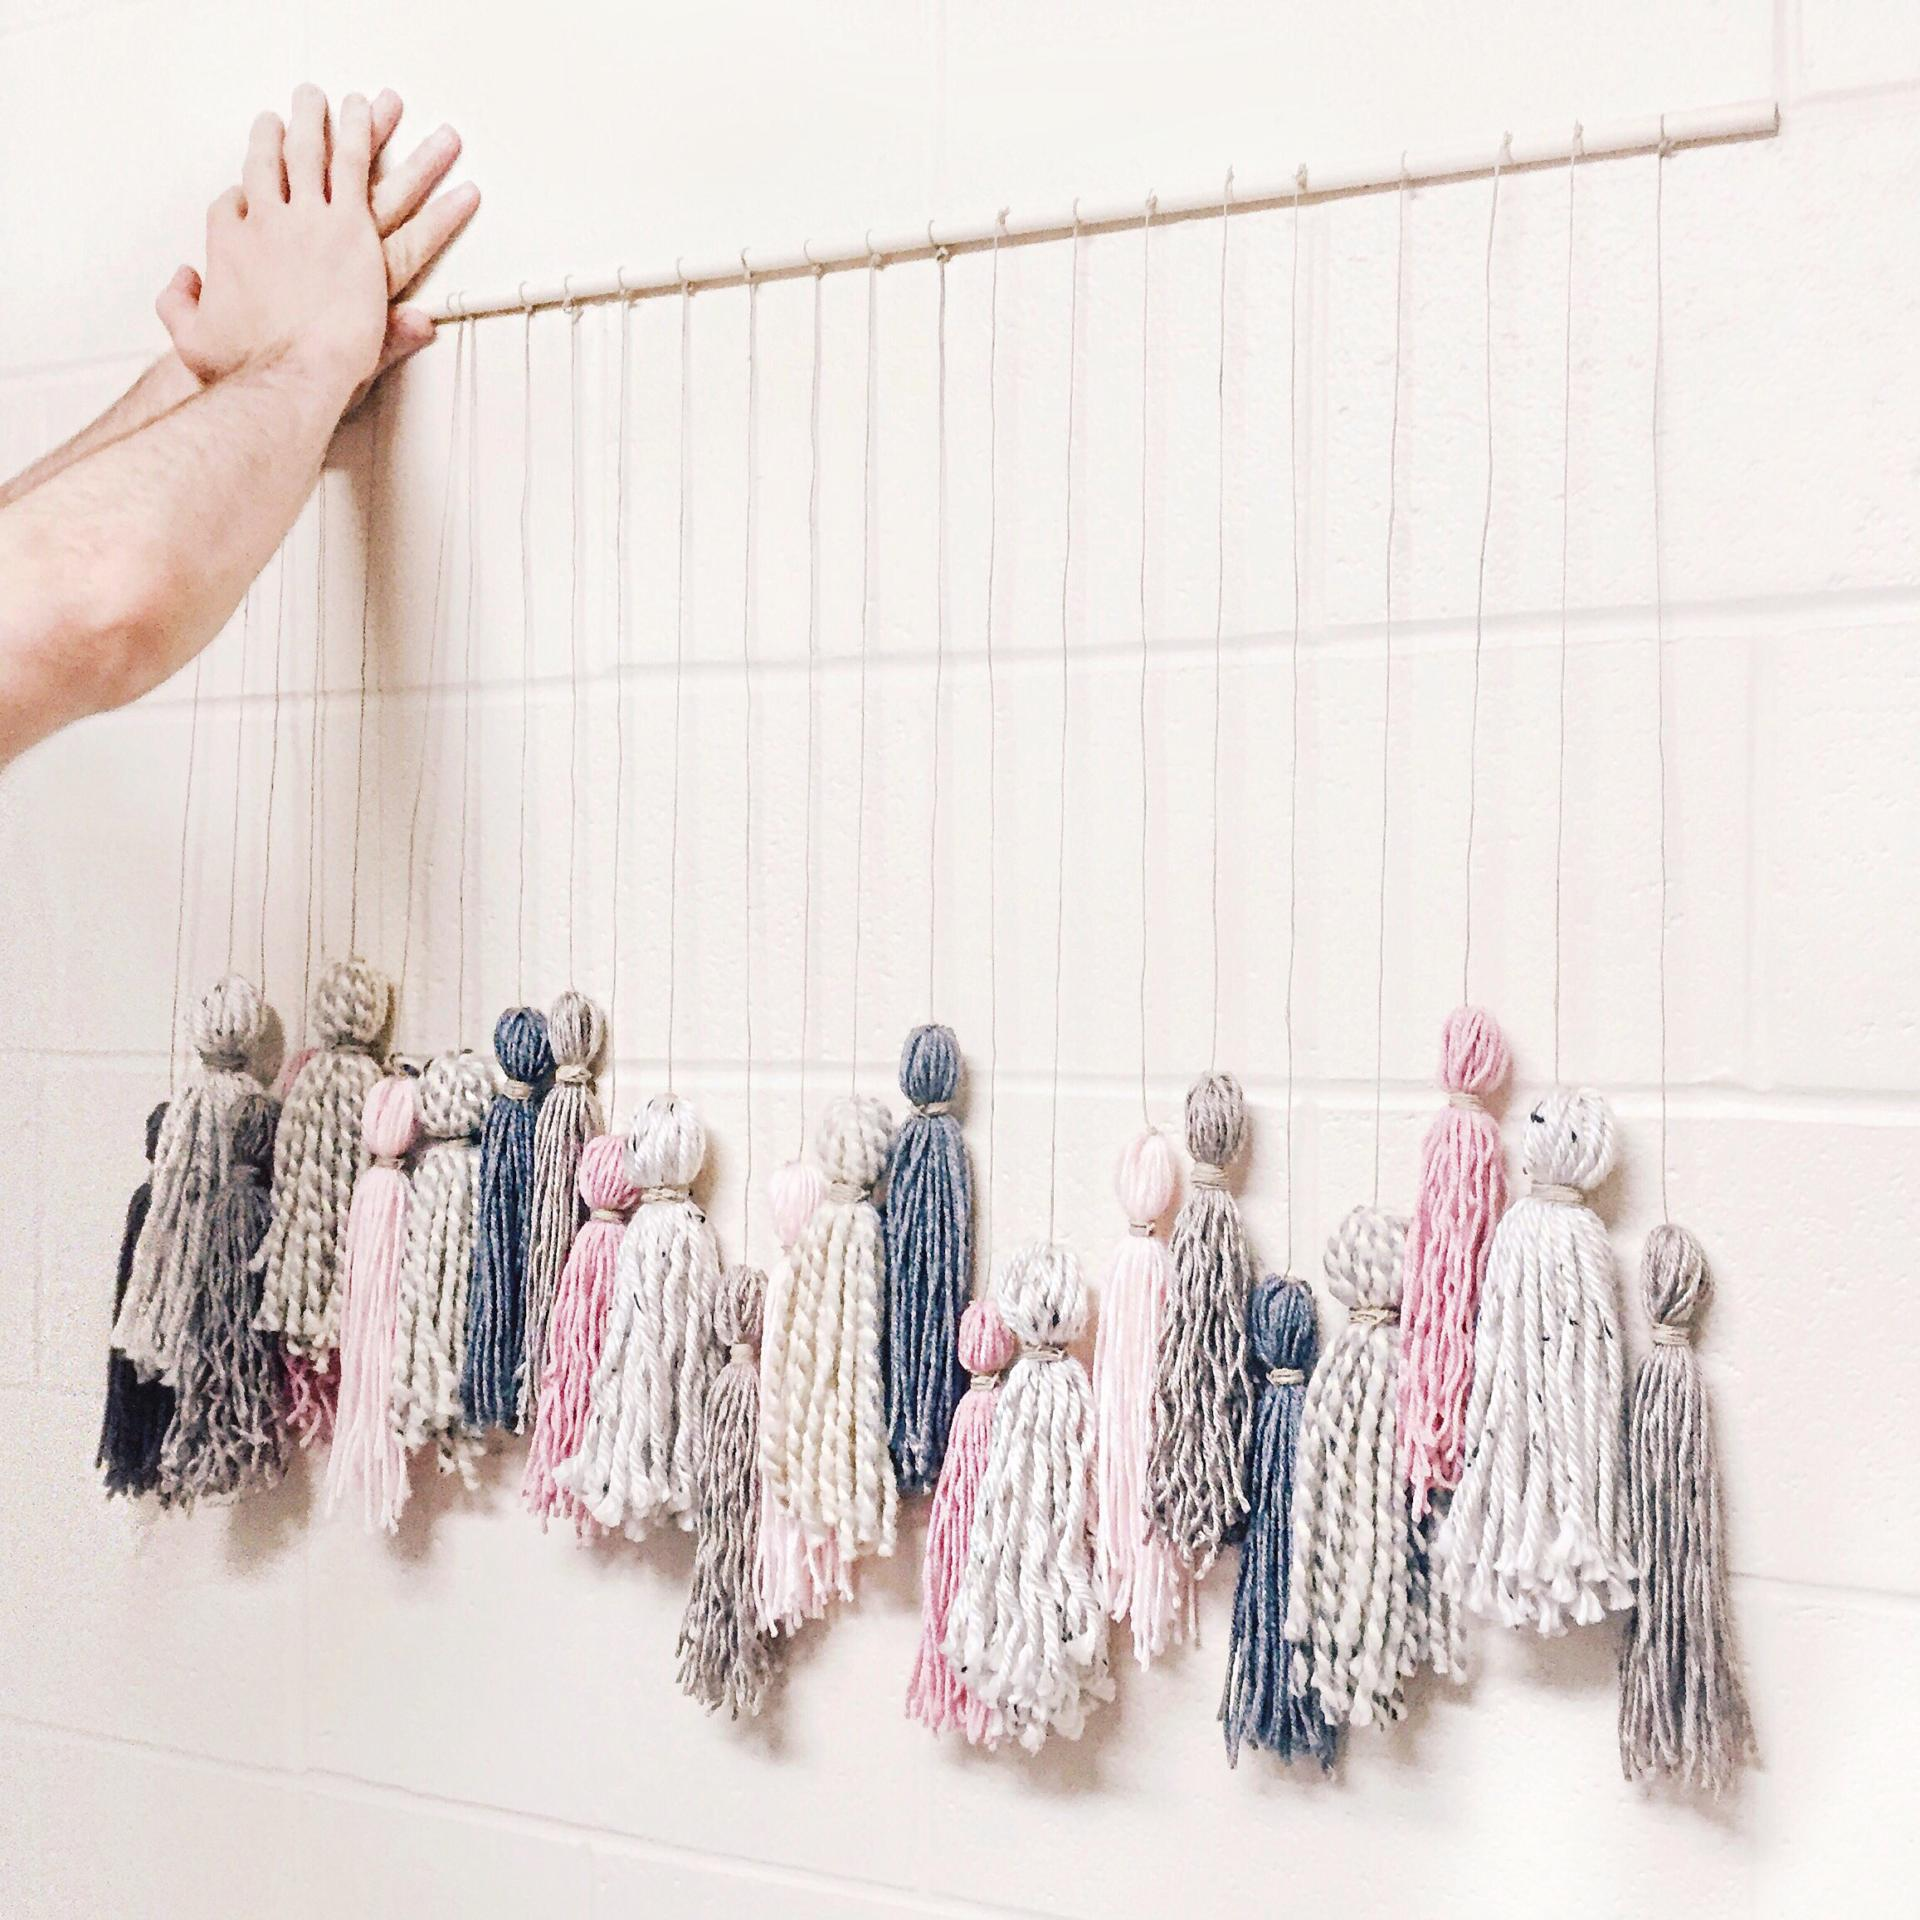 Diy tassel wall hanging abby saylor armbruster - Wall hanging ideas for bedrooms ...